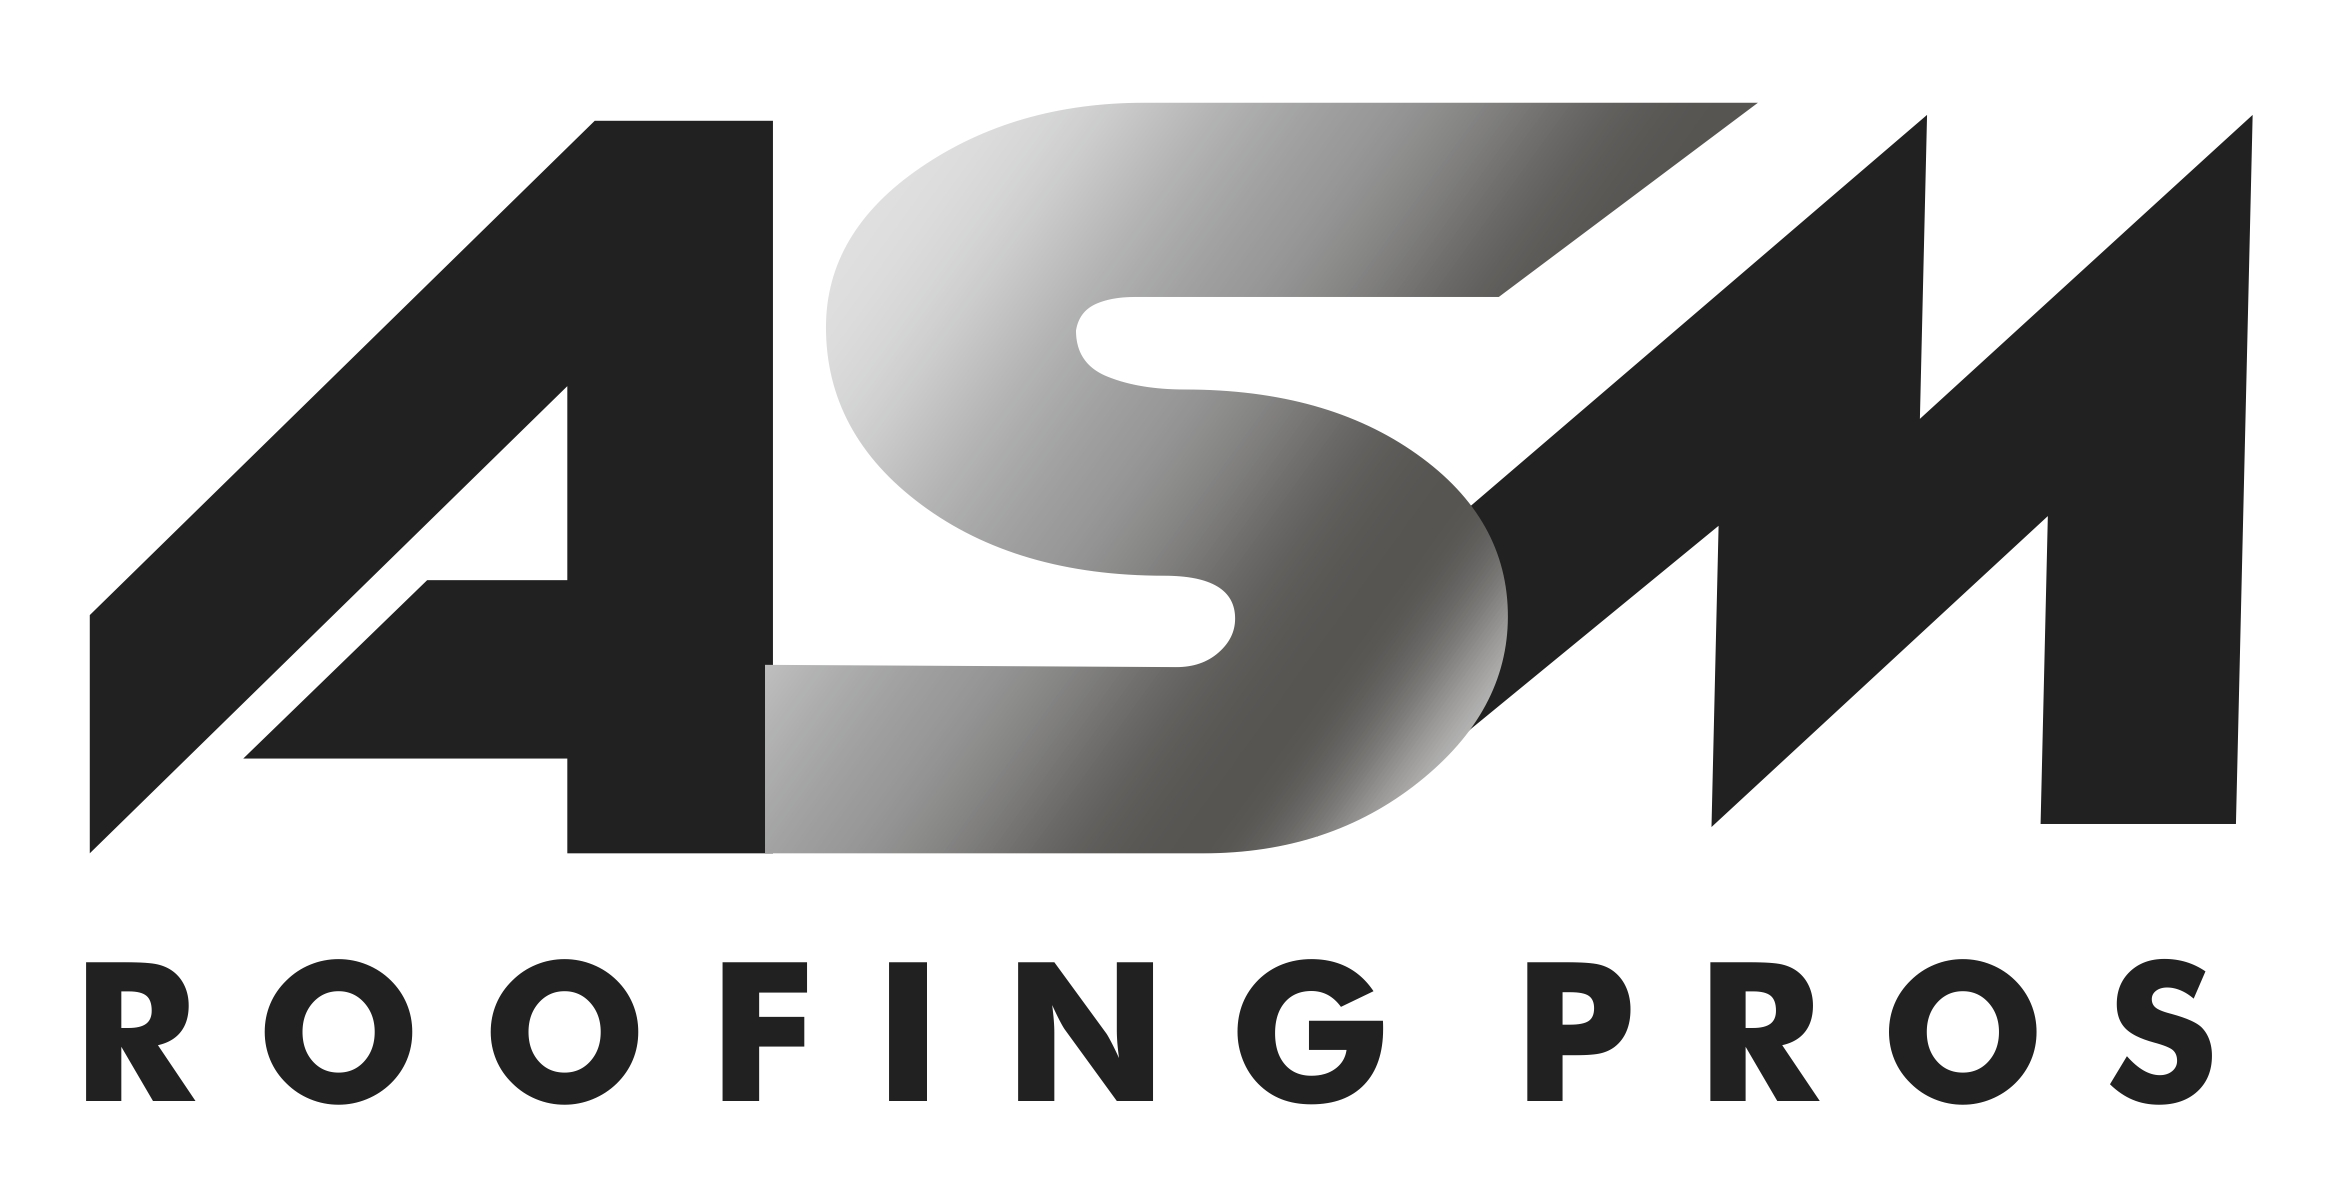 Asm Roofing Pros Llc In Spring Tx Roofing Contractors